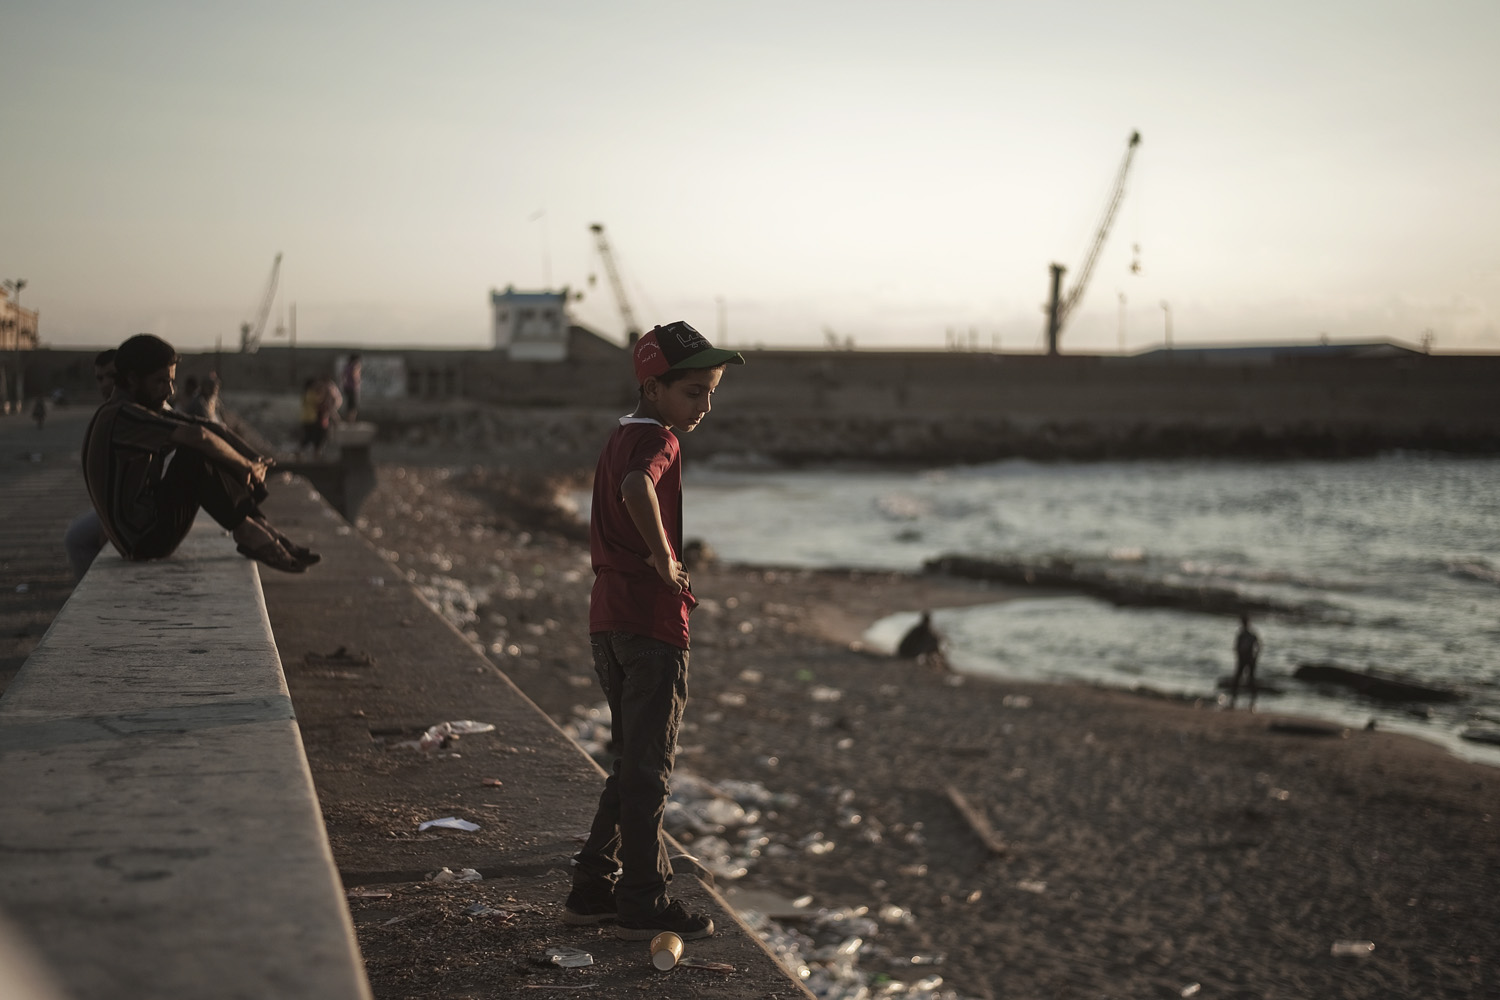 August 14, 2011. A Libyan child looks at the sea on a corniche seaside in the rebel stronghold city of Benghazi.